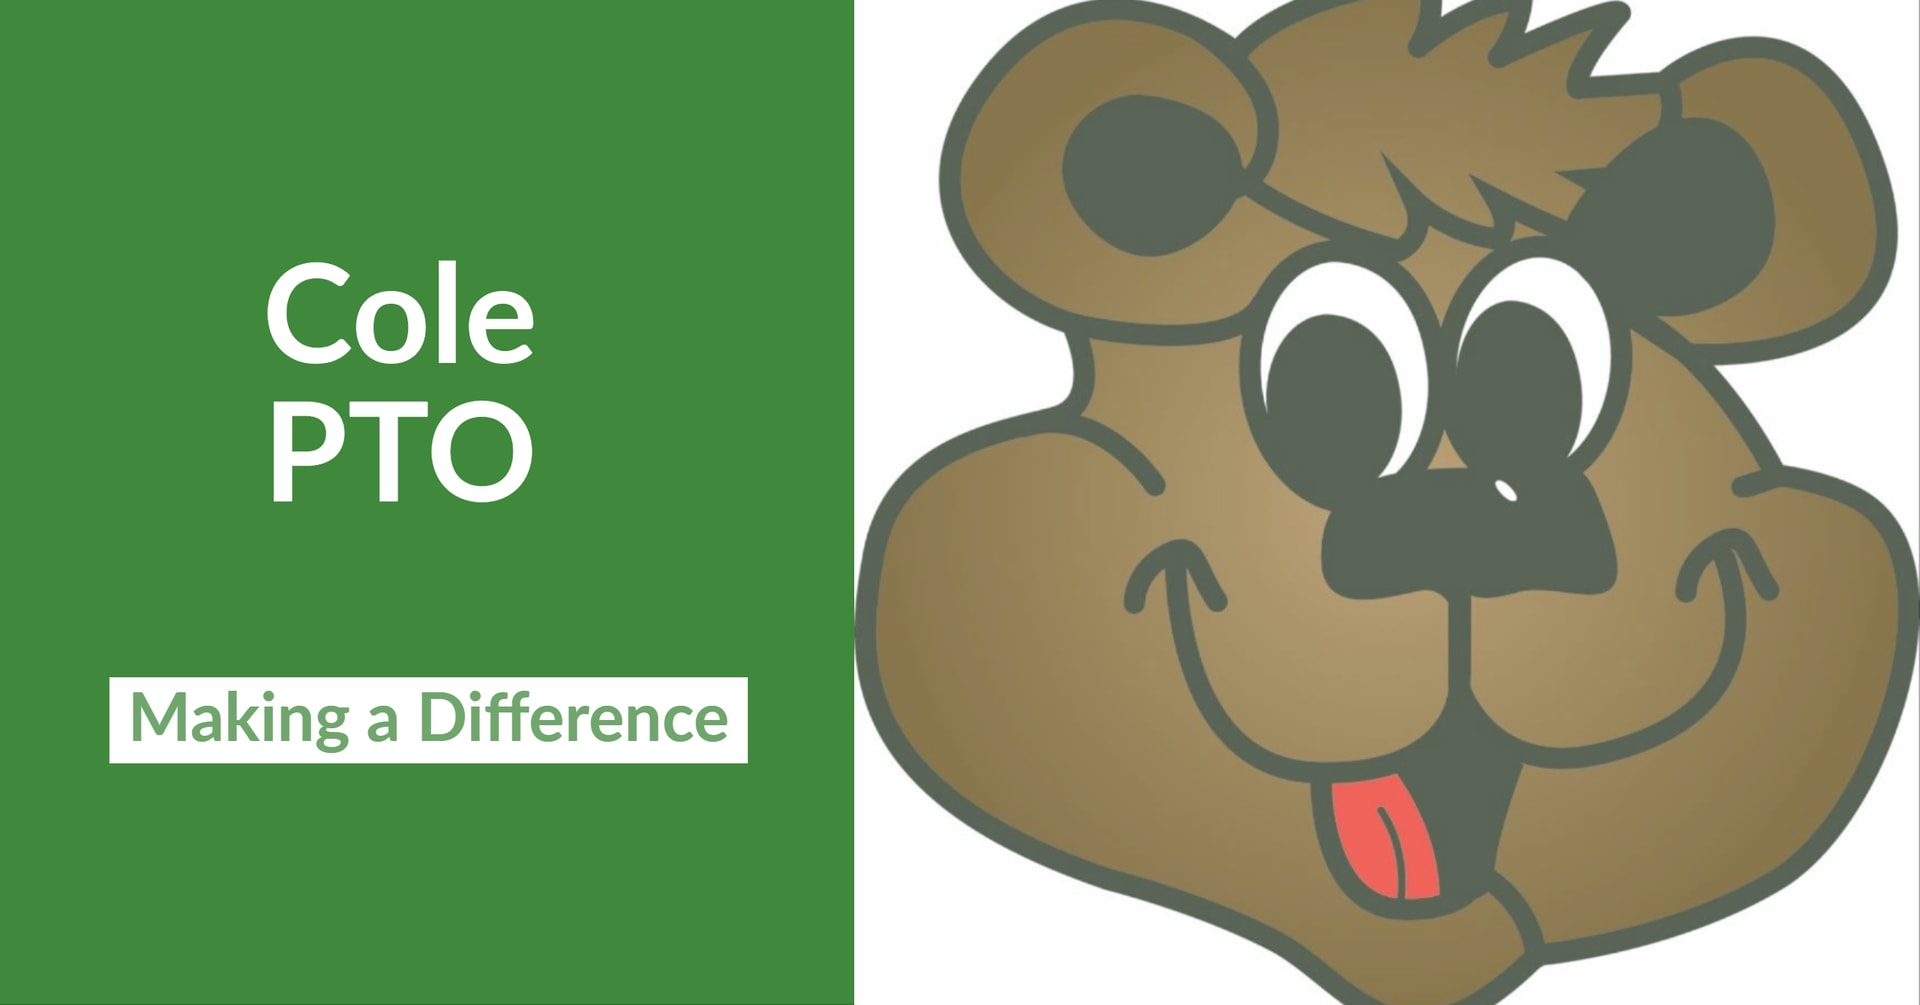 Cole PTO: Making a Difference in left half with green background. Cole Cub in white background on the right.